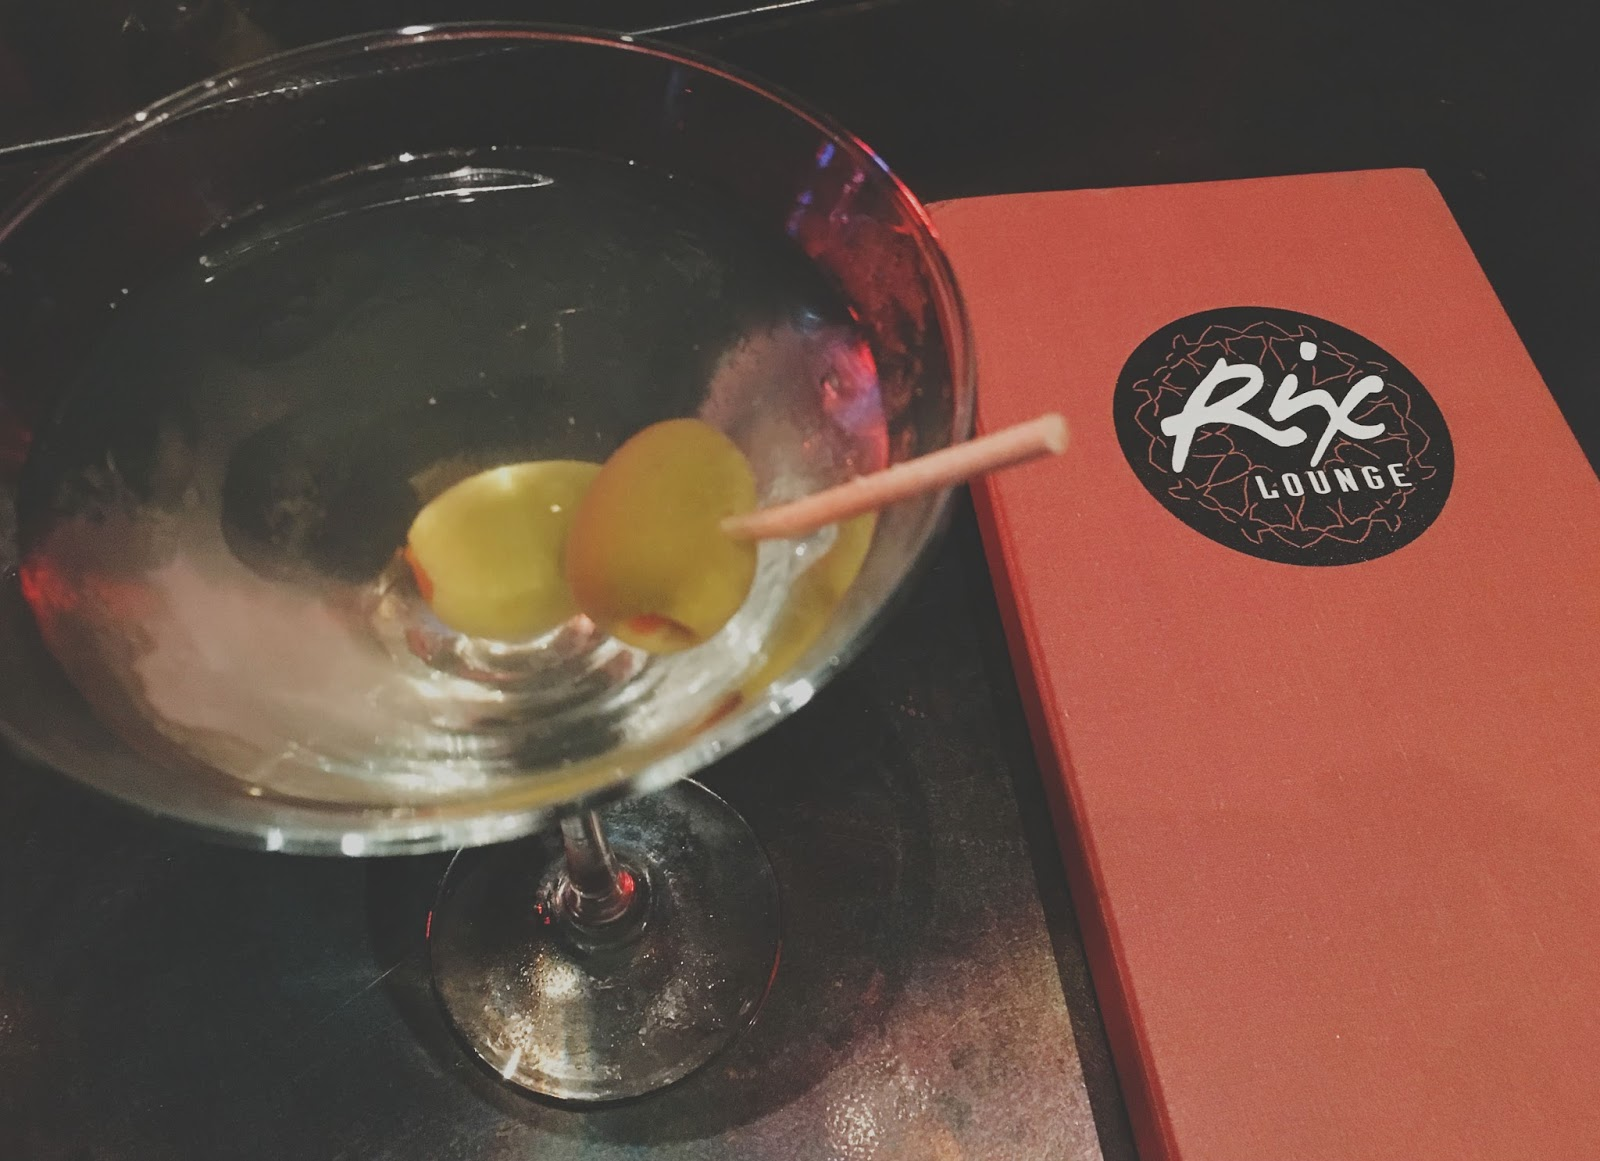 martini at Rix Lounge in Disney World, Florida